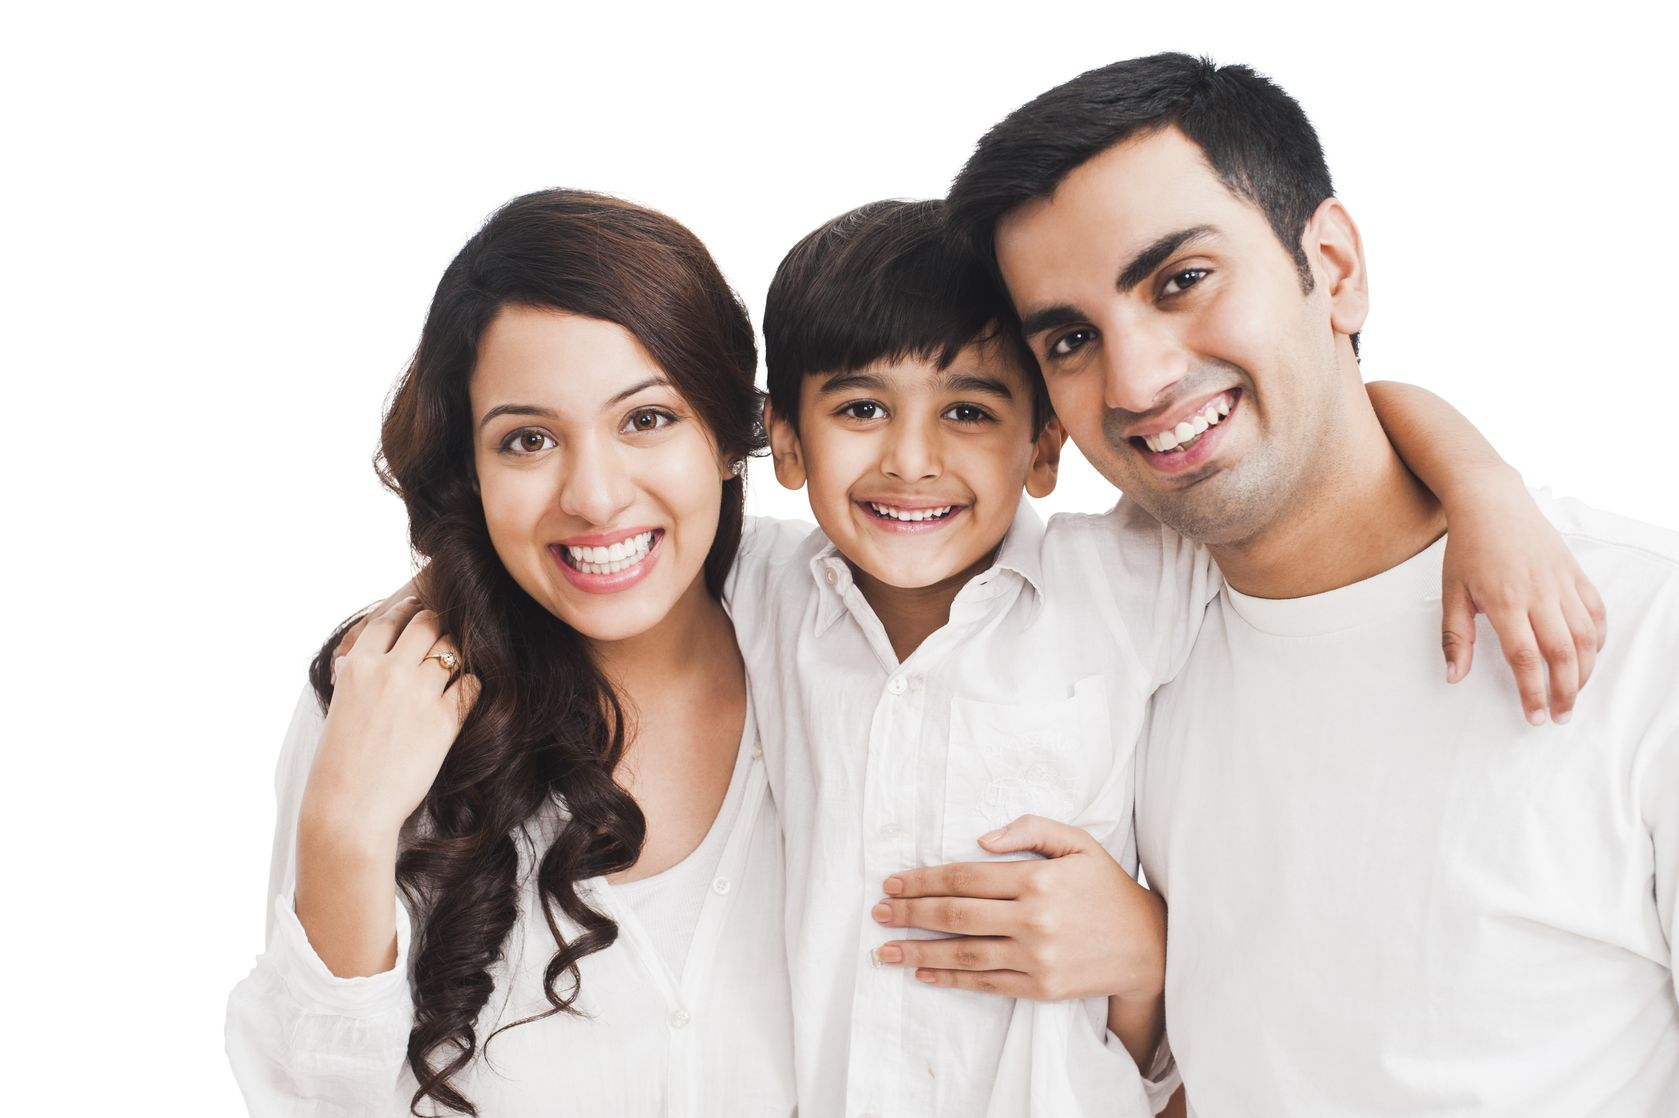 danville hindu personals Danville's best 100% free hindu dating site meet thousands of single hindus in danville with mingle2's free hindu personal ads and chat rooms our network of hindu men and women in danville.